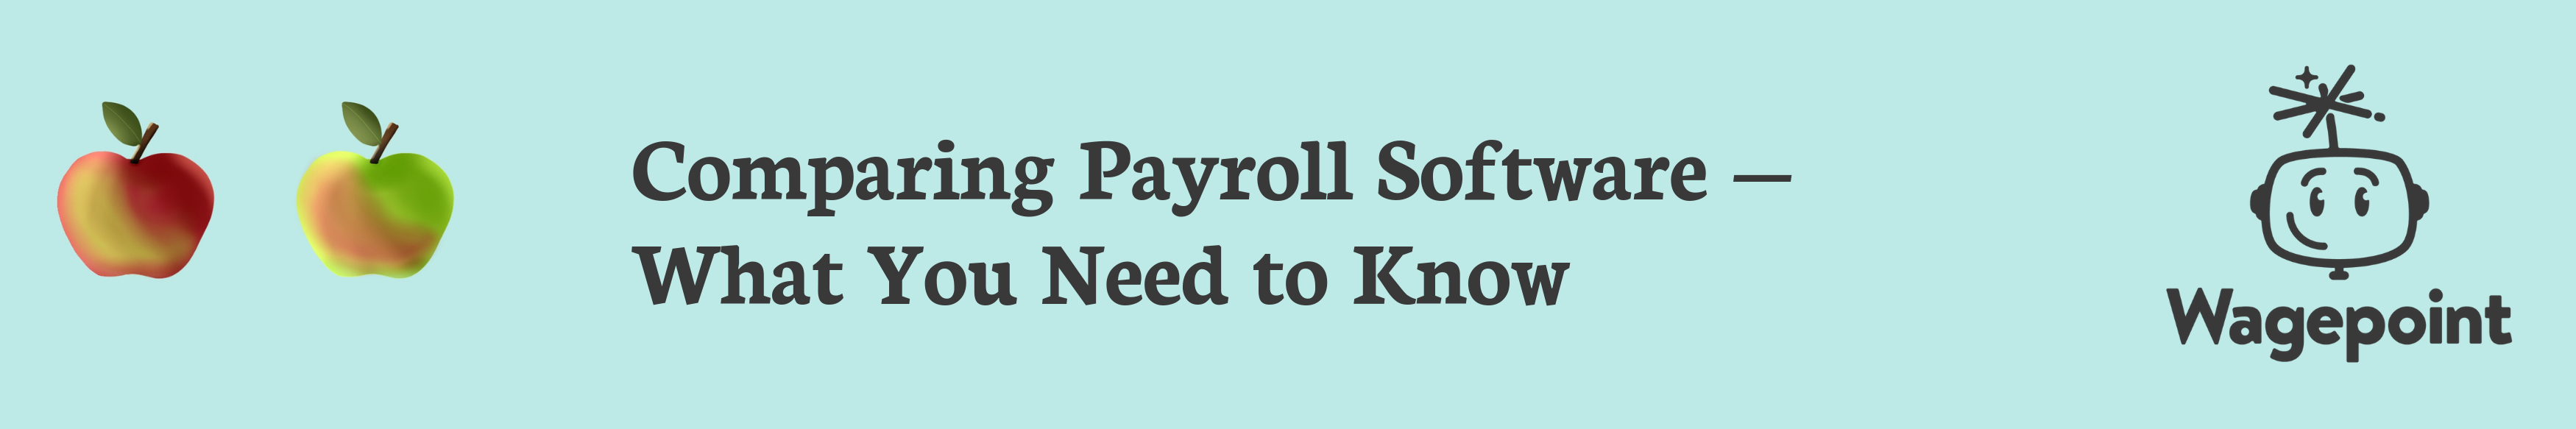 wagepoint small business payroll software comparing payroll banner